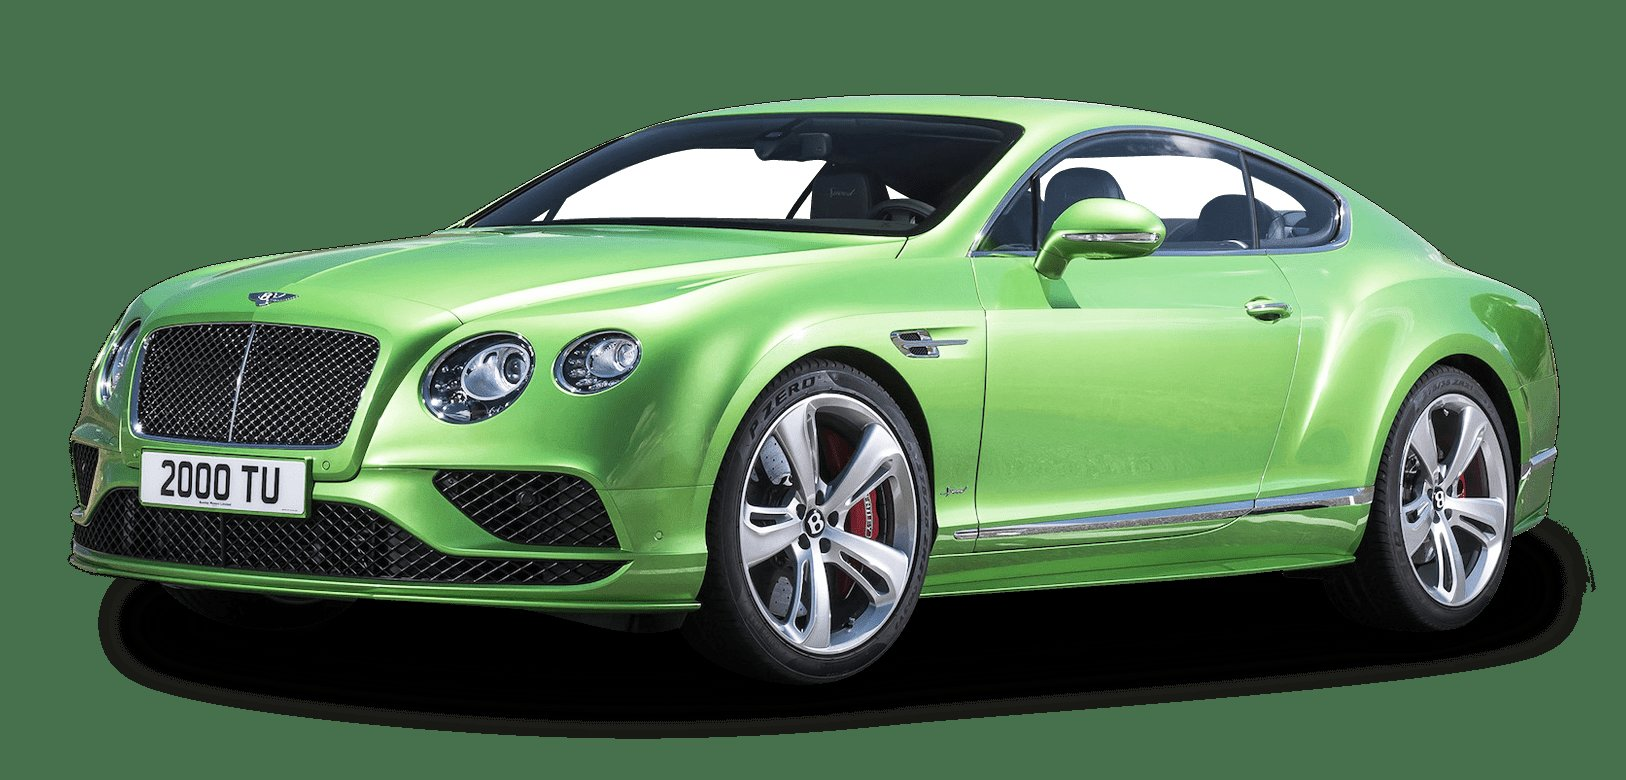 Latest Green Bentley Continental Gt4 Car Png Image Pngpix Free Download